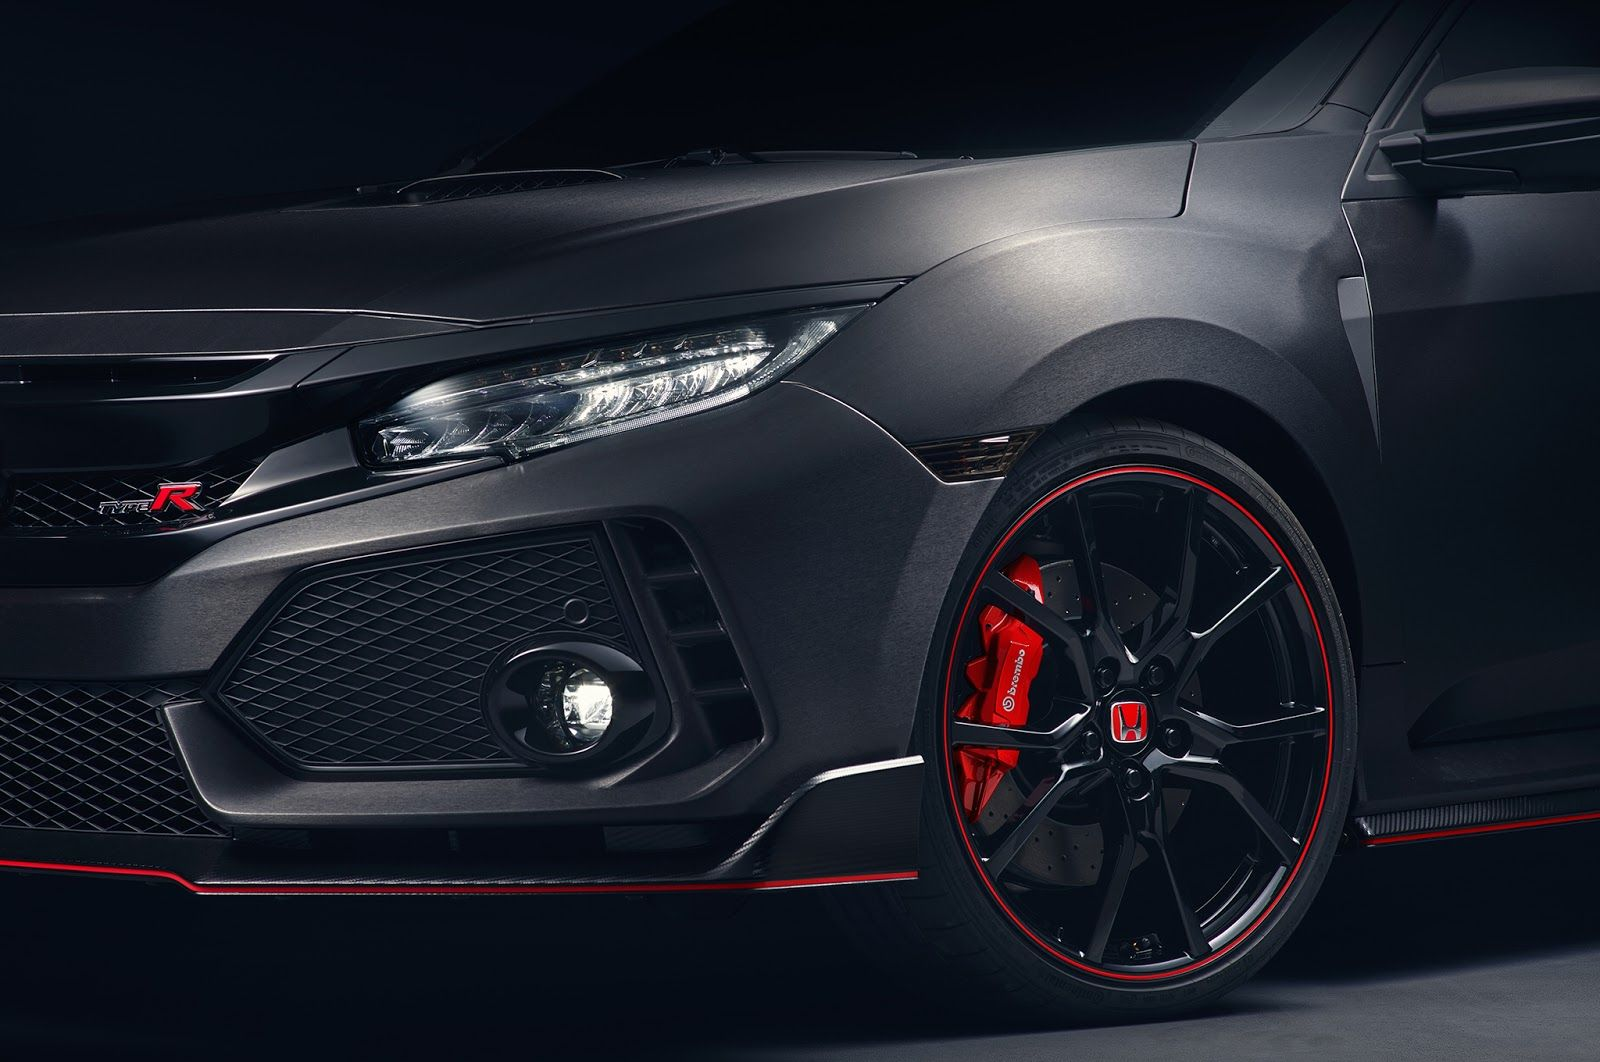 honda civic hatchback 2018 front. joining the new honda civic hatchback in a world premiere at paris auto show is 2018 front